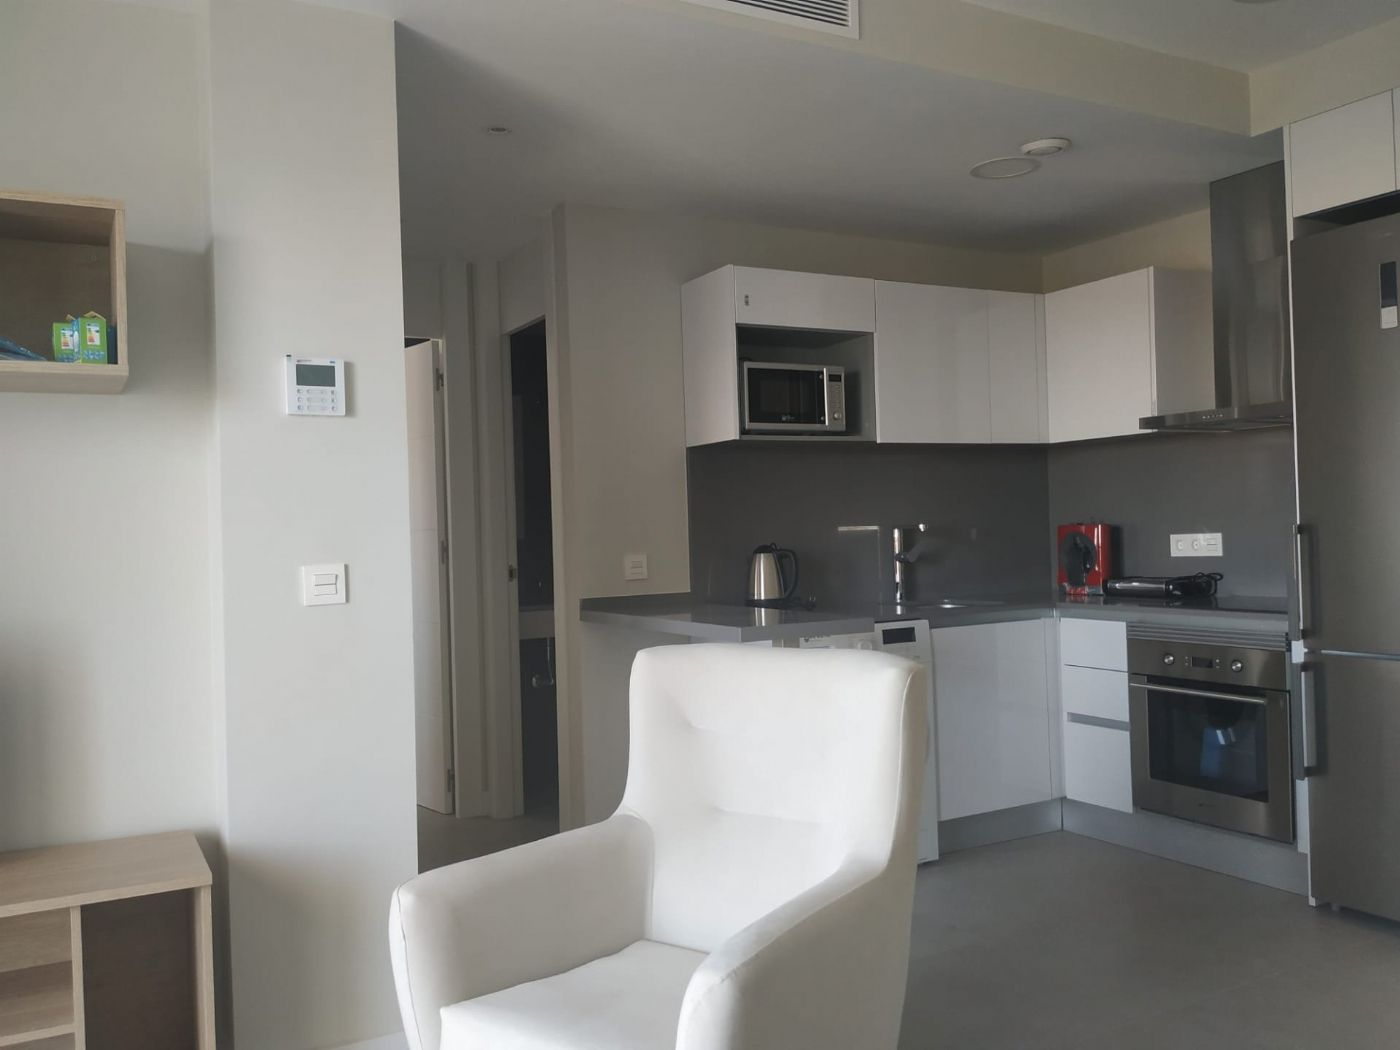 Location Appartement à Avenida de las palmeras,. Aldea del sol